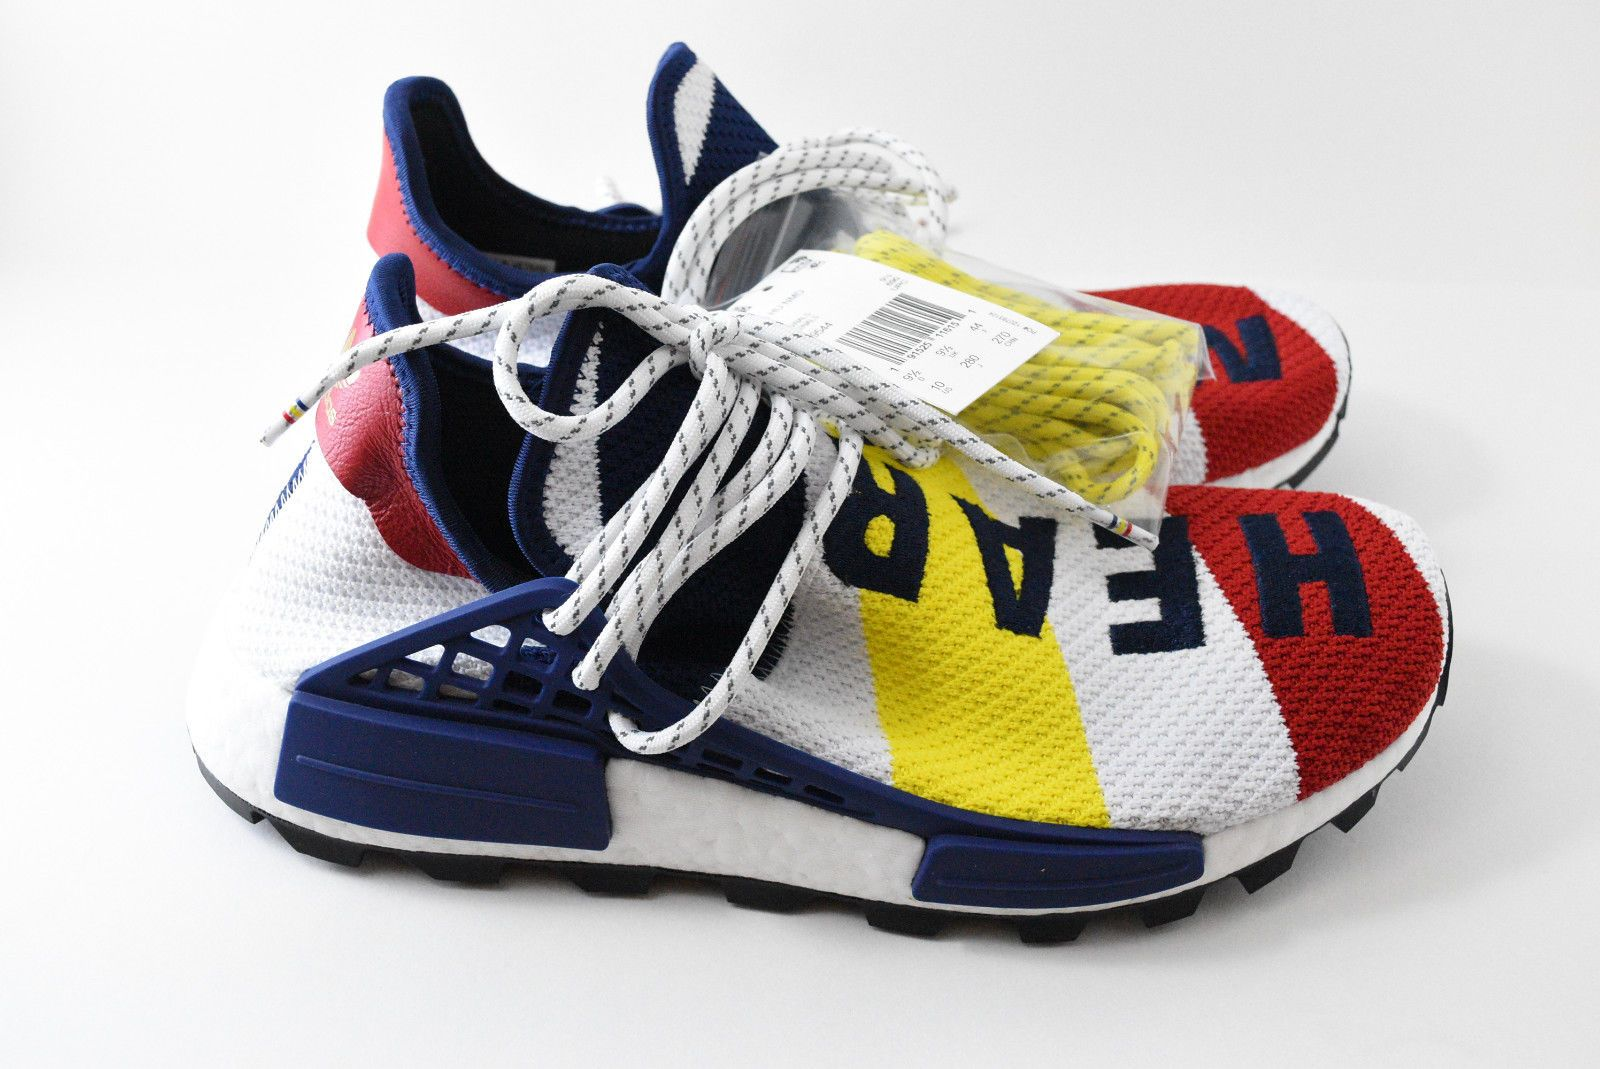 592fdf95789b0 Adidas Pharrell Williams BBC (Billionaire Boys Club) HU NMD Shoe Size10